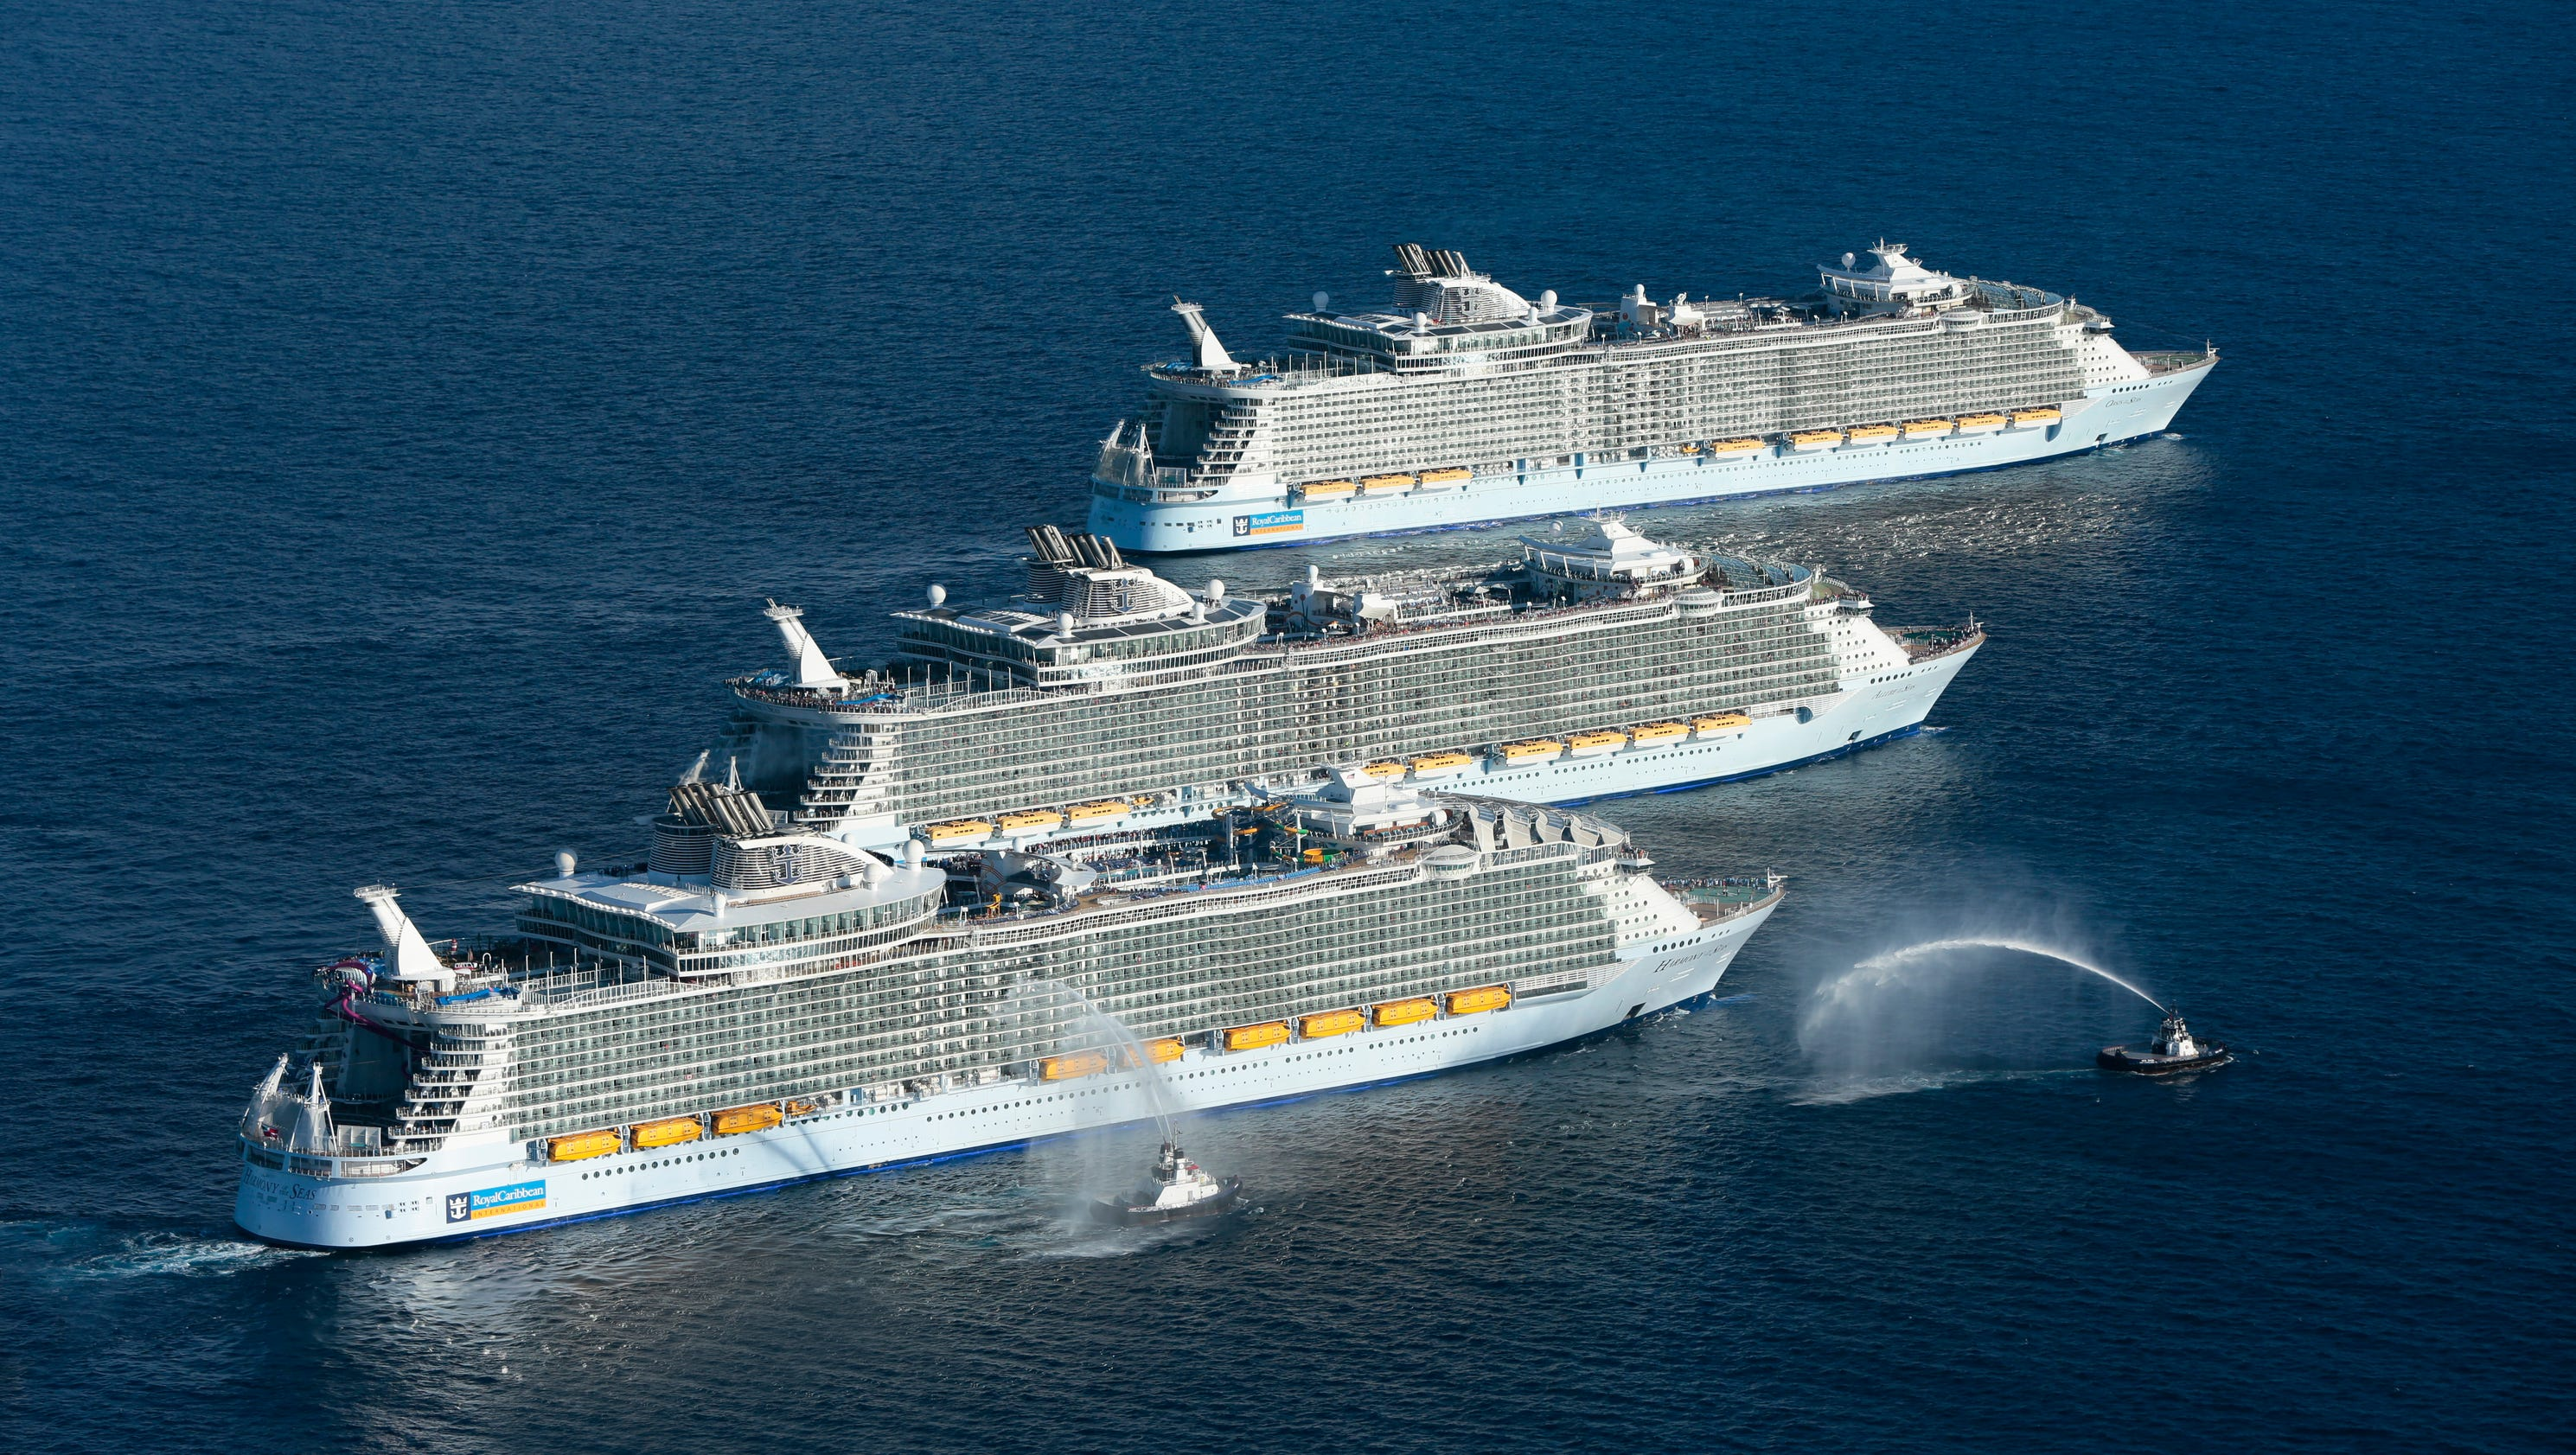 Photos: World's largest cruise ships in historic meetup